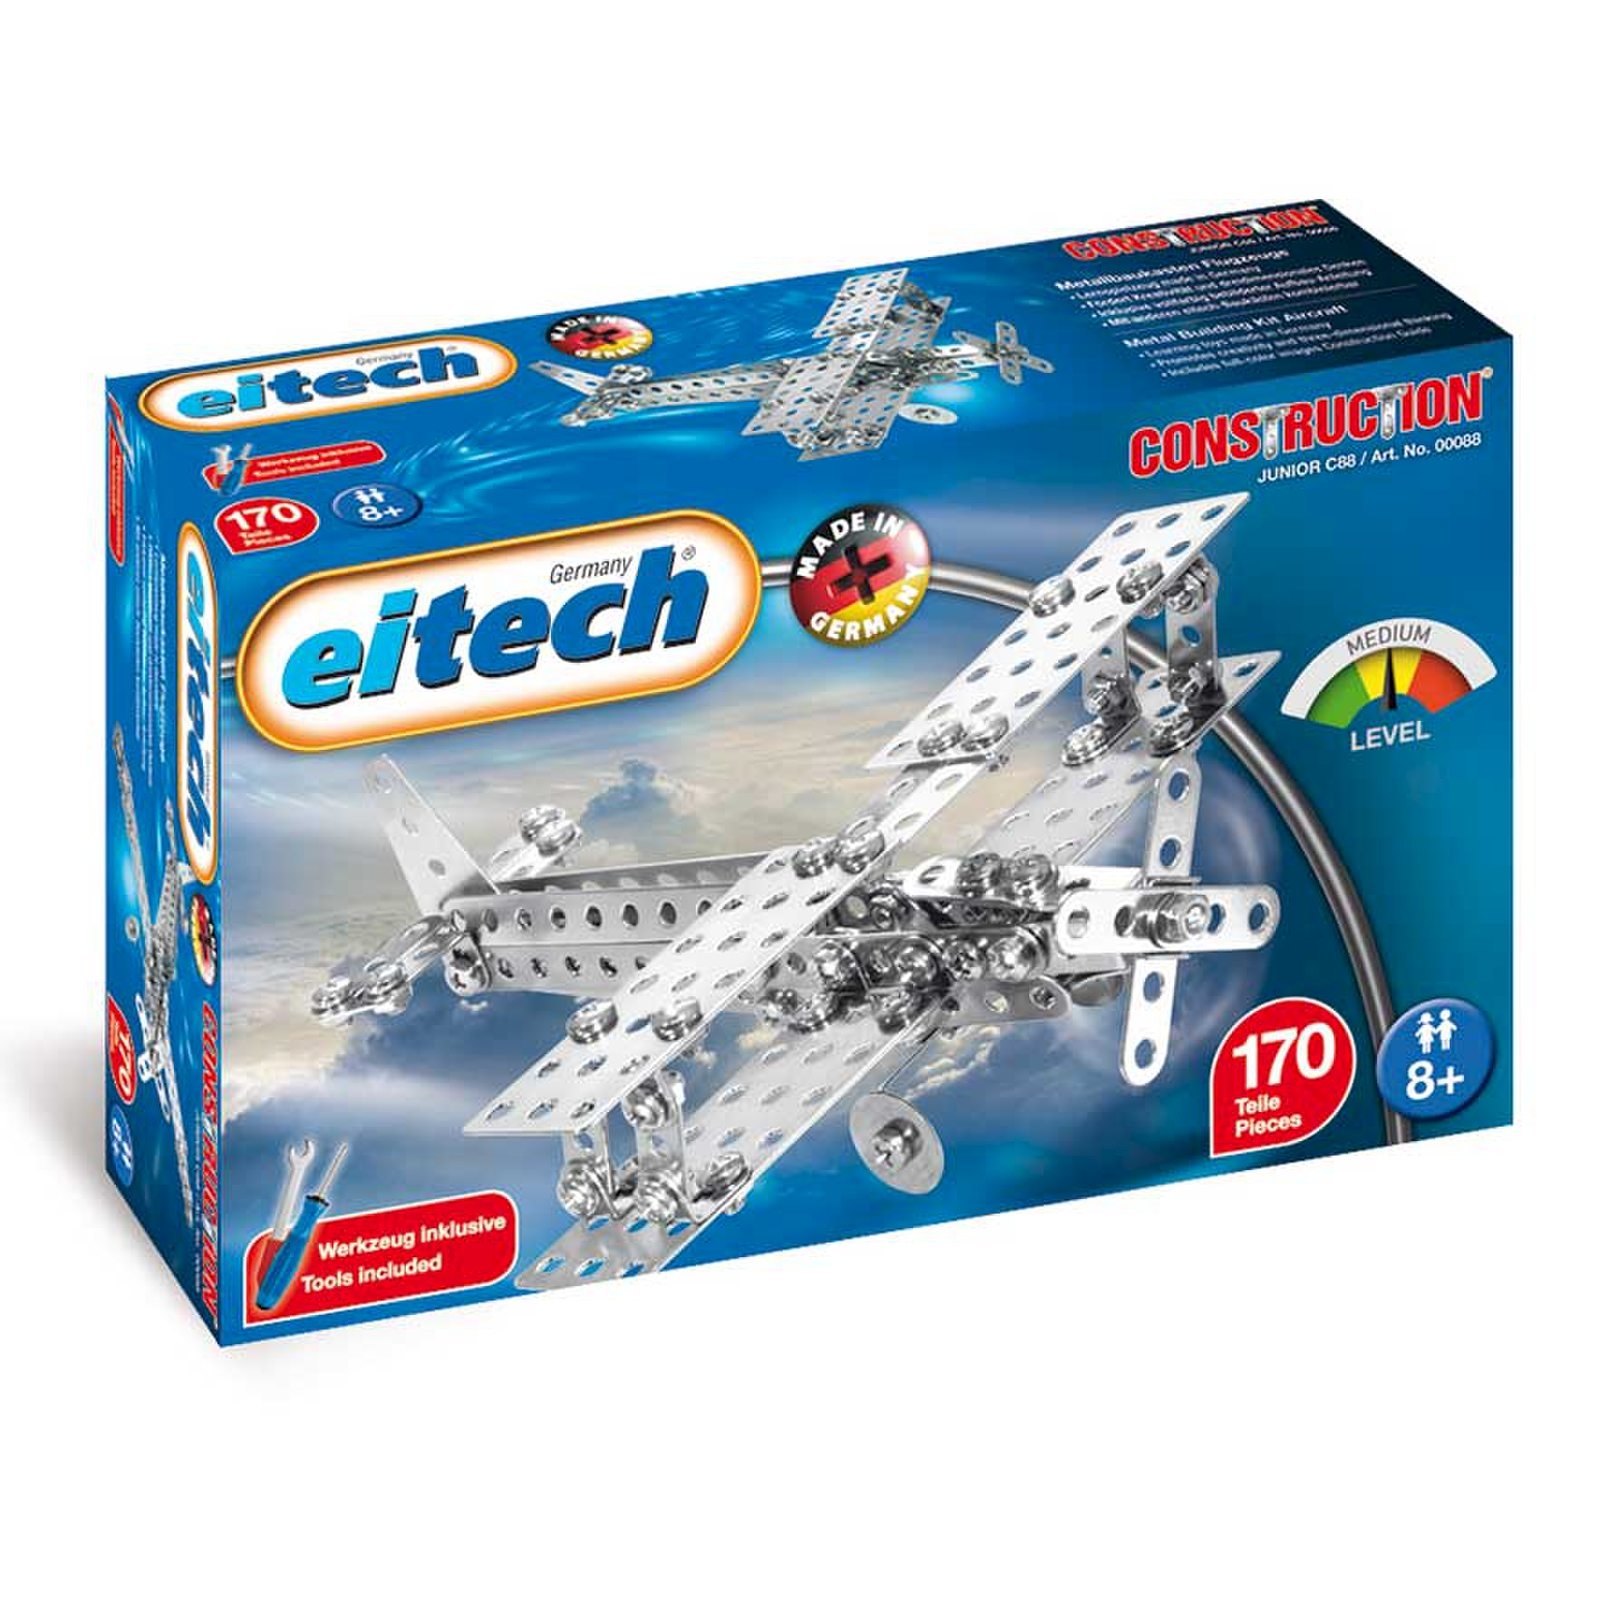 Eitech Medal Building Set Double Decker Propeller Plane Construction 170 Tlg Ebay